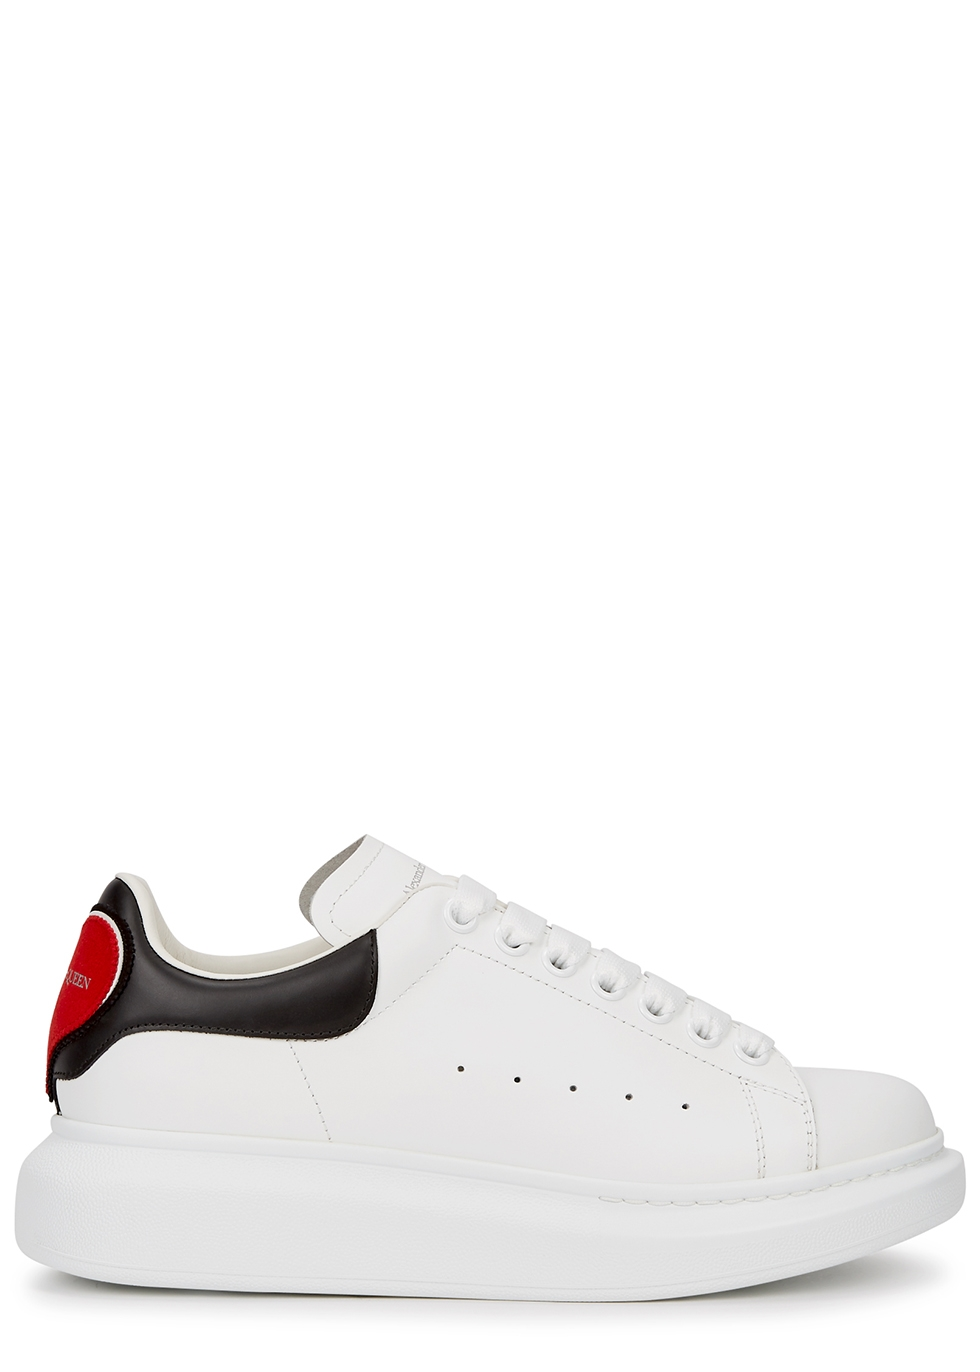 ladies white low top trainers